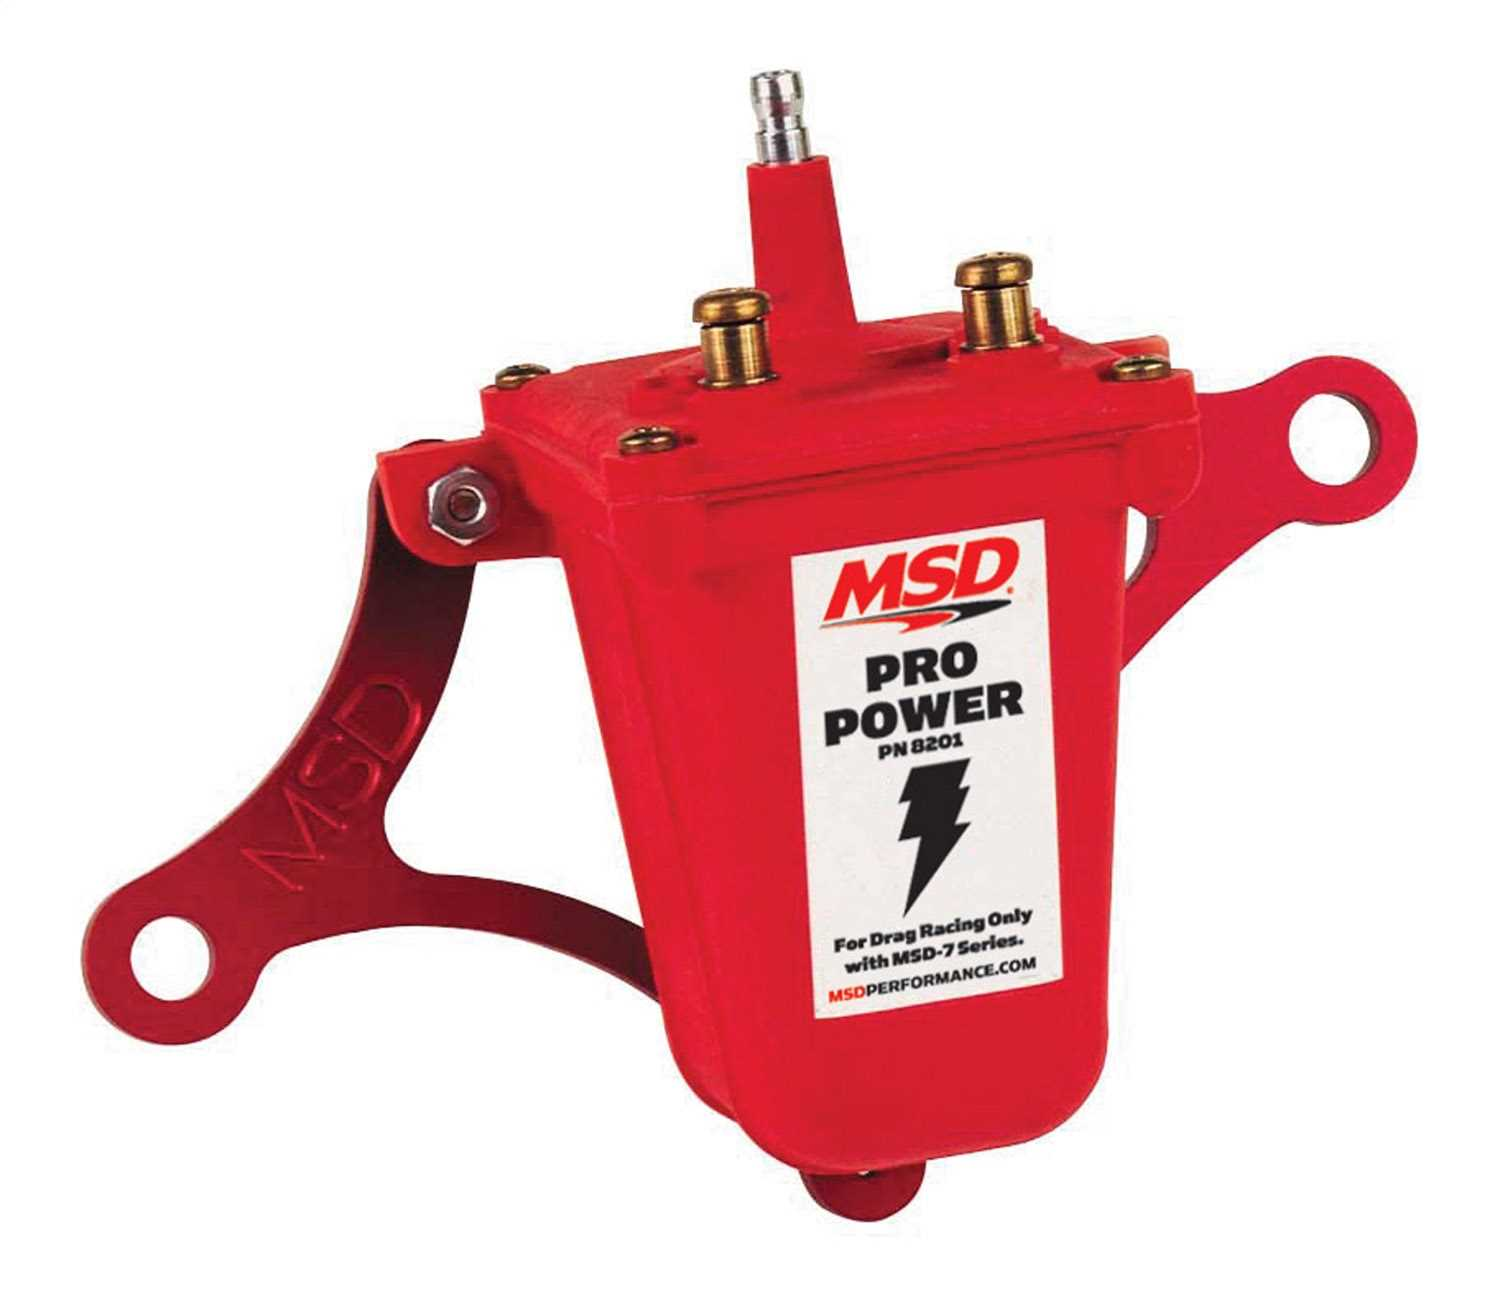 MSD Ignition Pro Power Ignition Coil 8201 8201